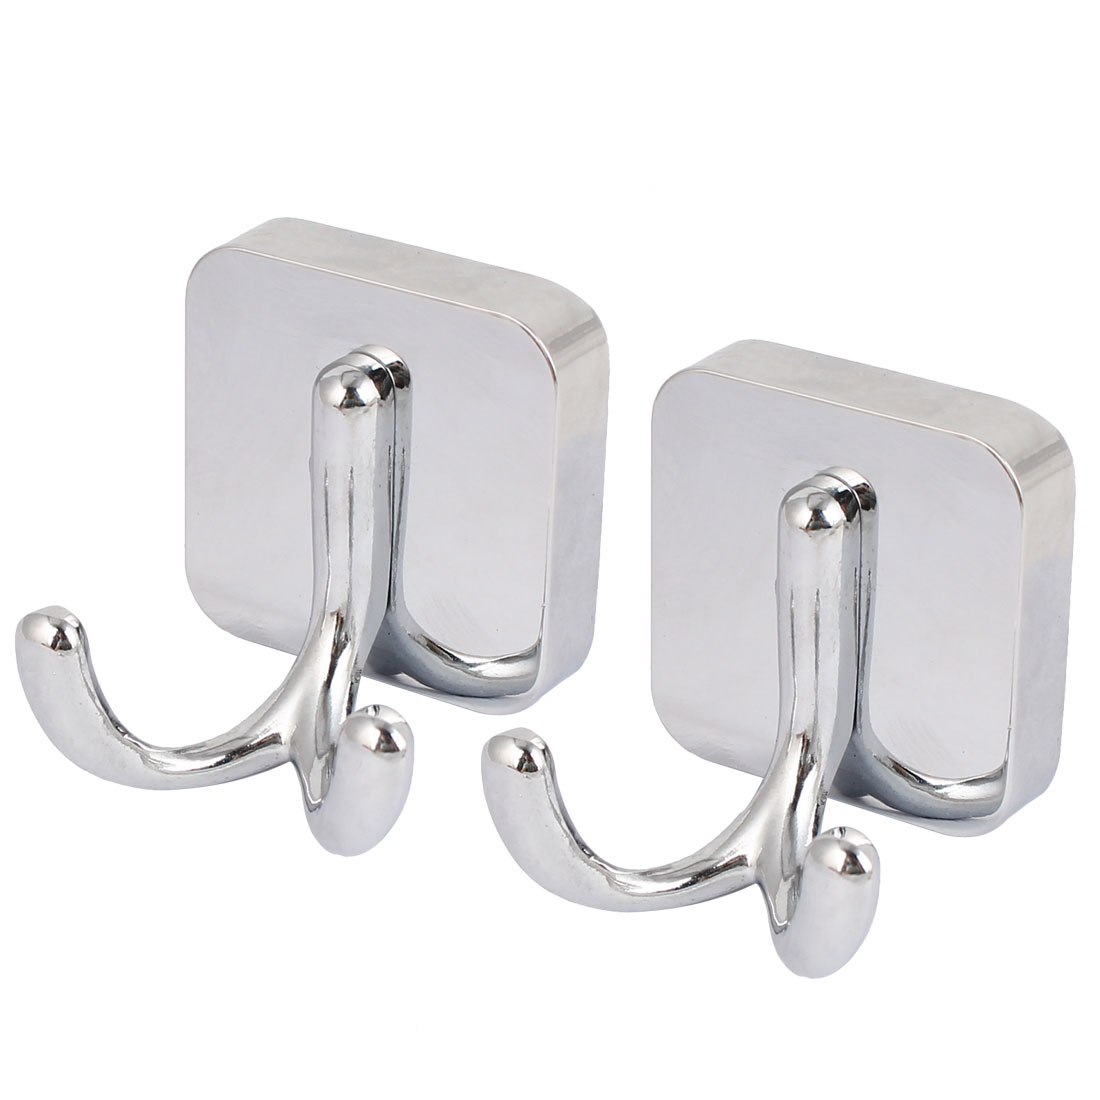 Bathroom Robe Hat Hanging Wall Mounted Zinc Alloy Chrome Plated Double Hanger Hook Silver Tone 2pcs